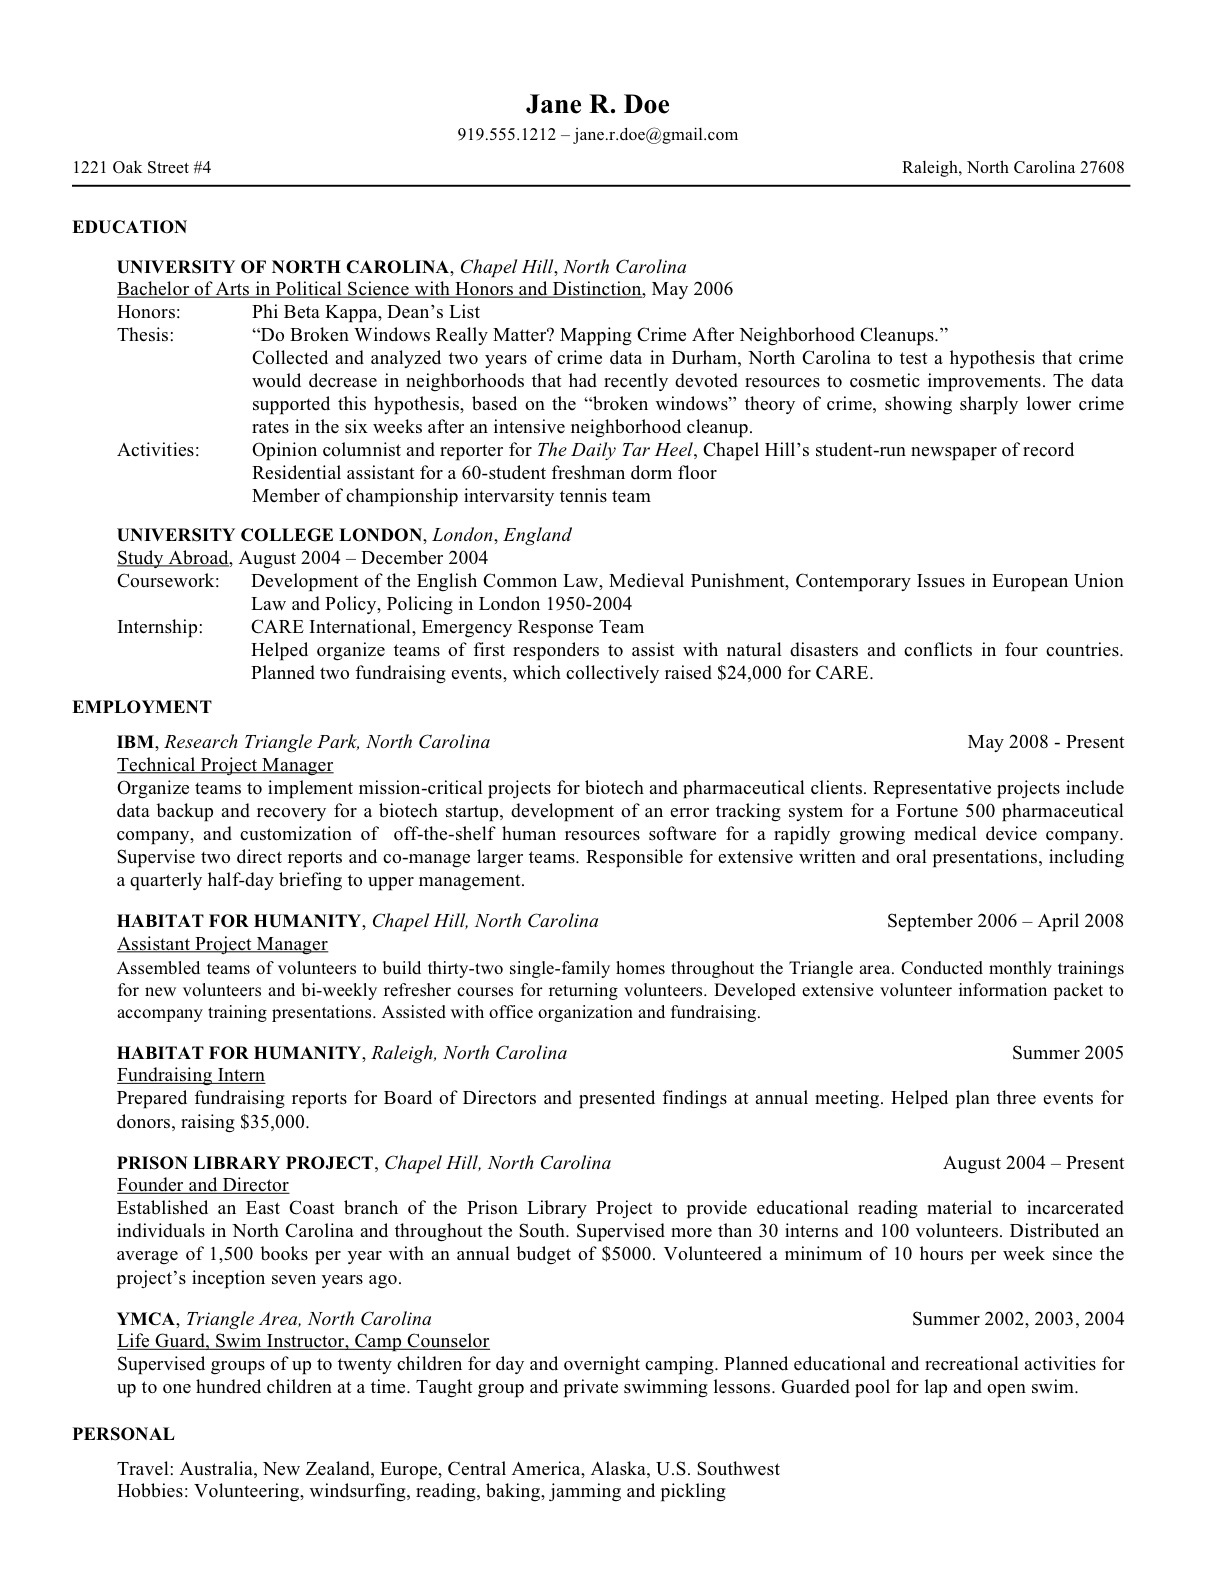 College admission student resume